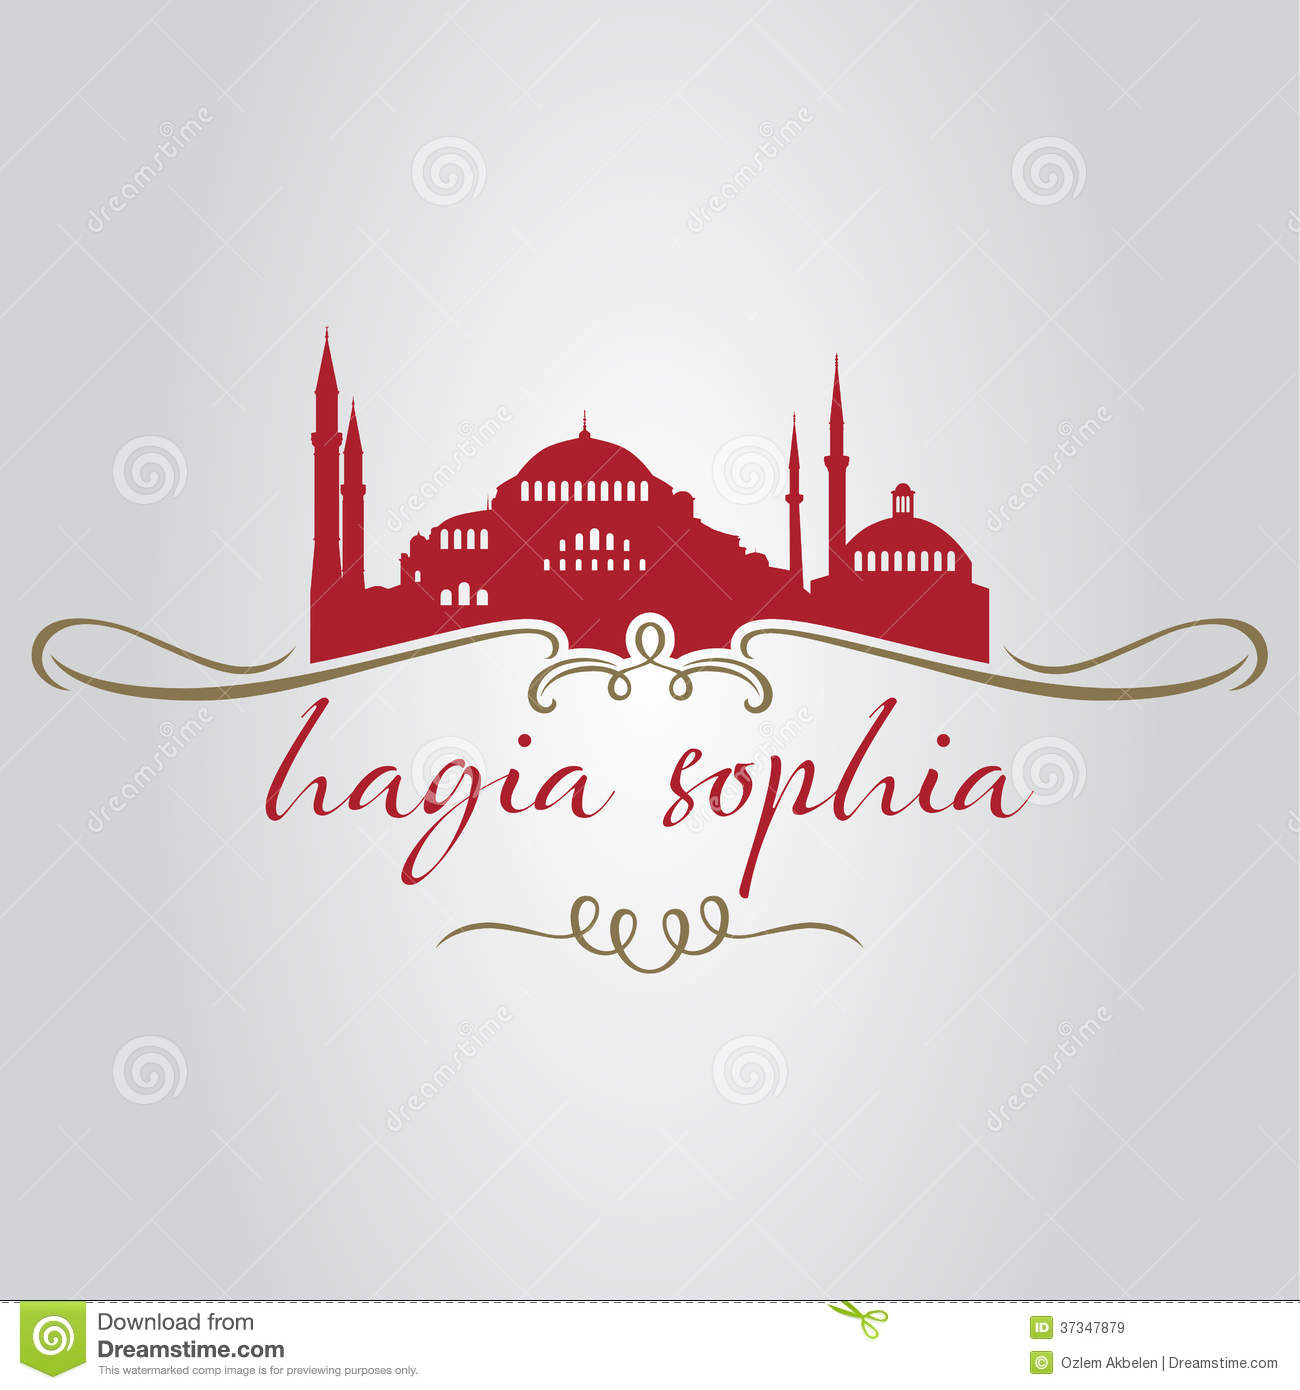 Download Istanbul hagiasophia vektor illustrationer. Illustration av stad - 37347879